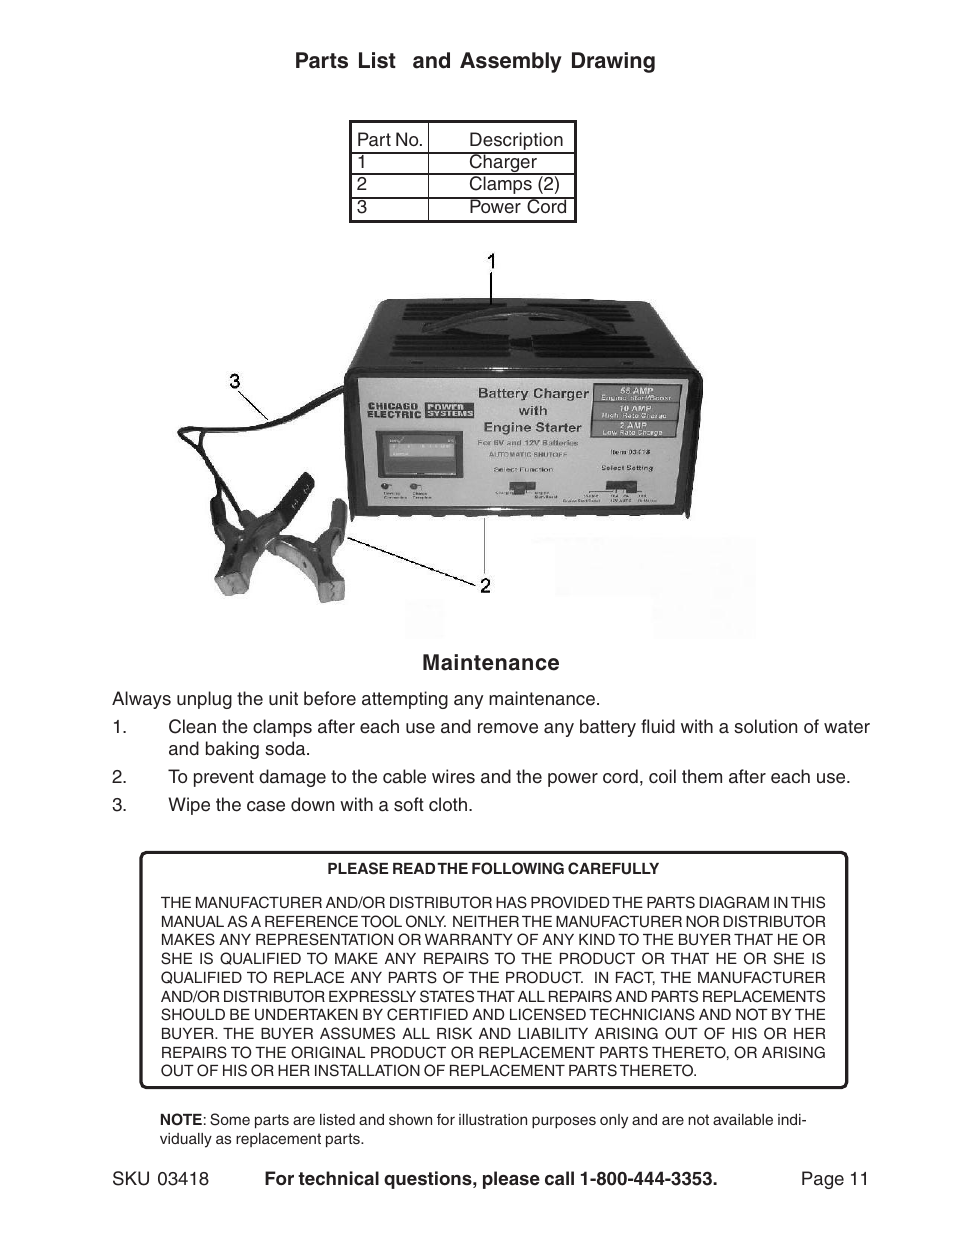 Harbor Freight Tools 03418 User Manual | Page 11 / 11 on sears battery charger schematic, harbor freight inverter schematic, dell battery charger schematic, harbor freight drill schematic,